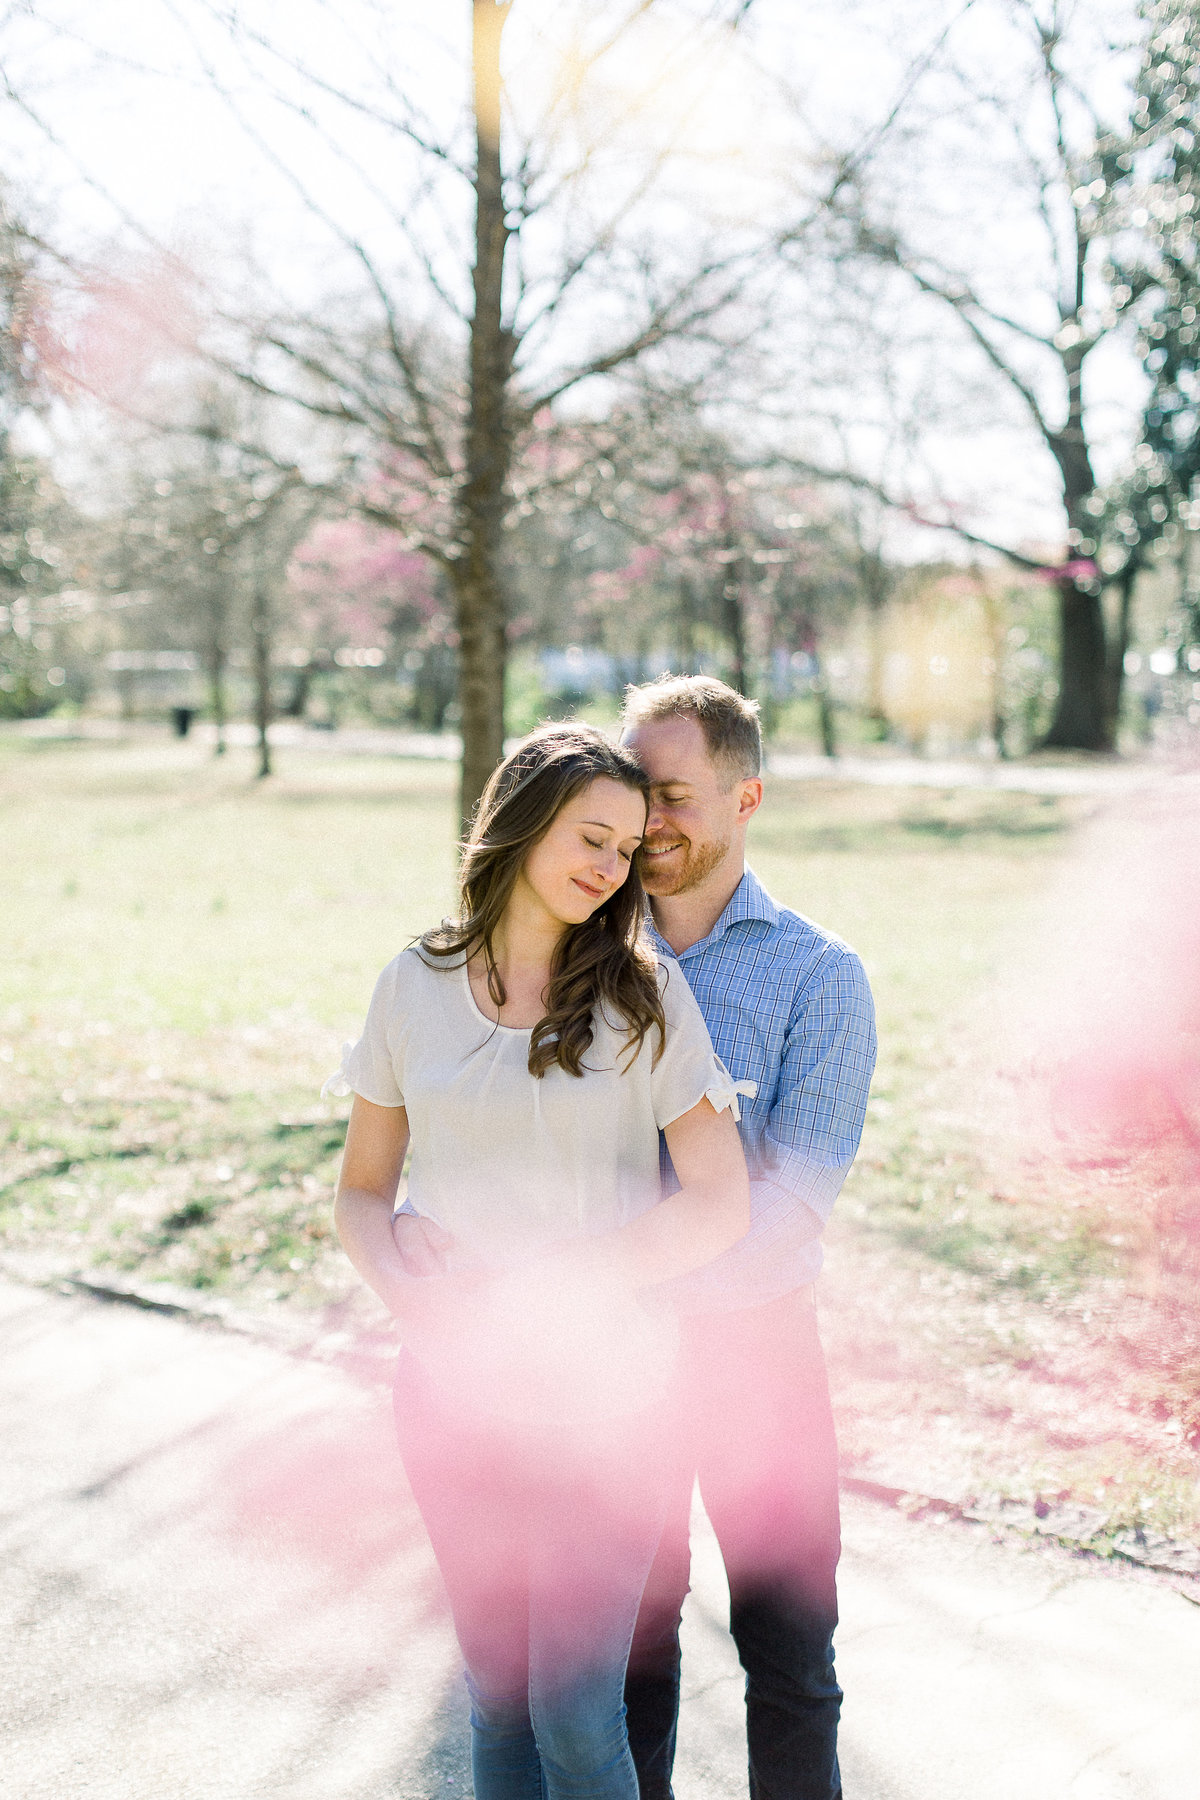 Lizzie Baker Photo _ Atlanta Engagement Photographer _ Atlanta Wedding Photographer _ Biltmore Wedding Photographer _ Foxhall Wedding Photographer _ Yew Dell Wedding55